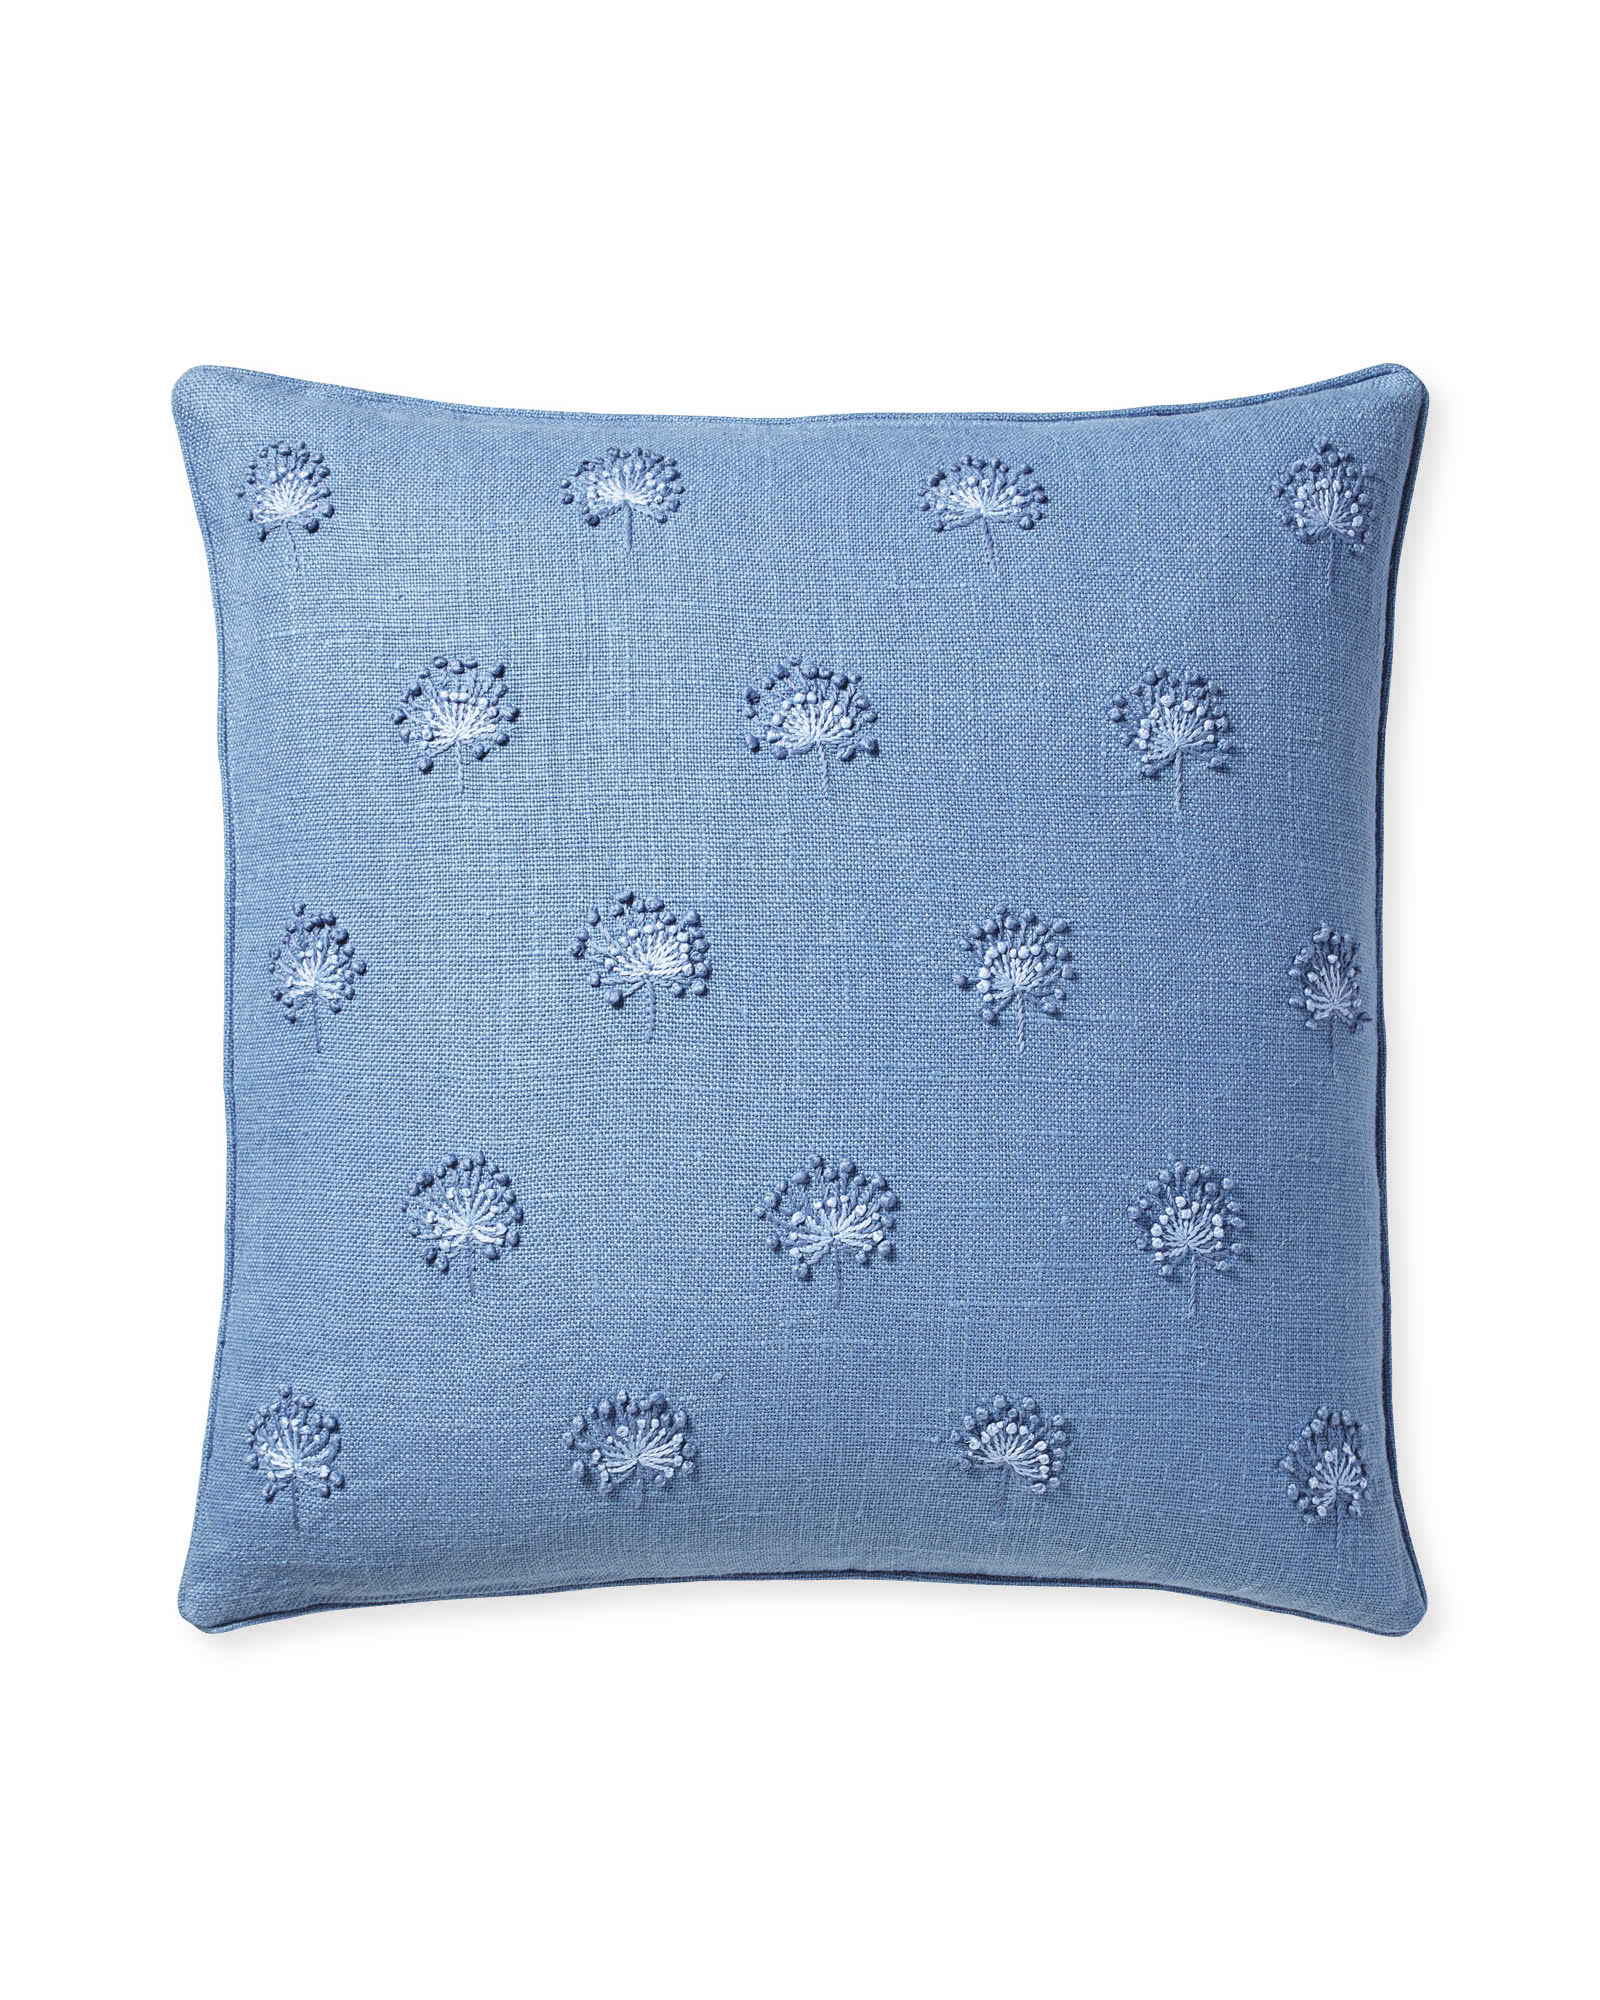 Dandelion Embroidered Pillow Cover, Harbor